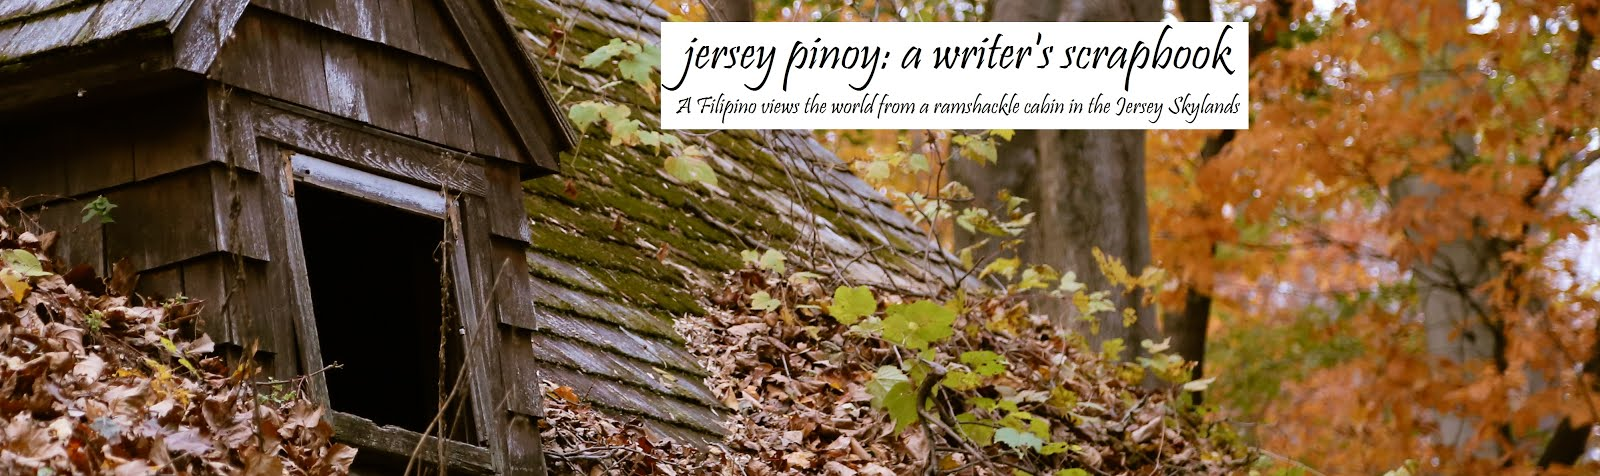 JERSEY PINOY: A WRITER'S SCRAPBOOK